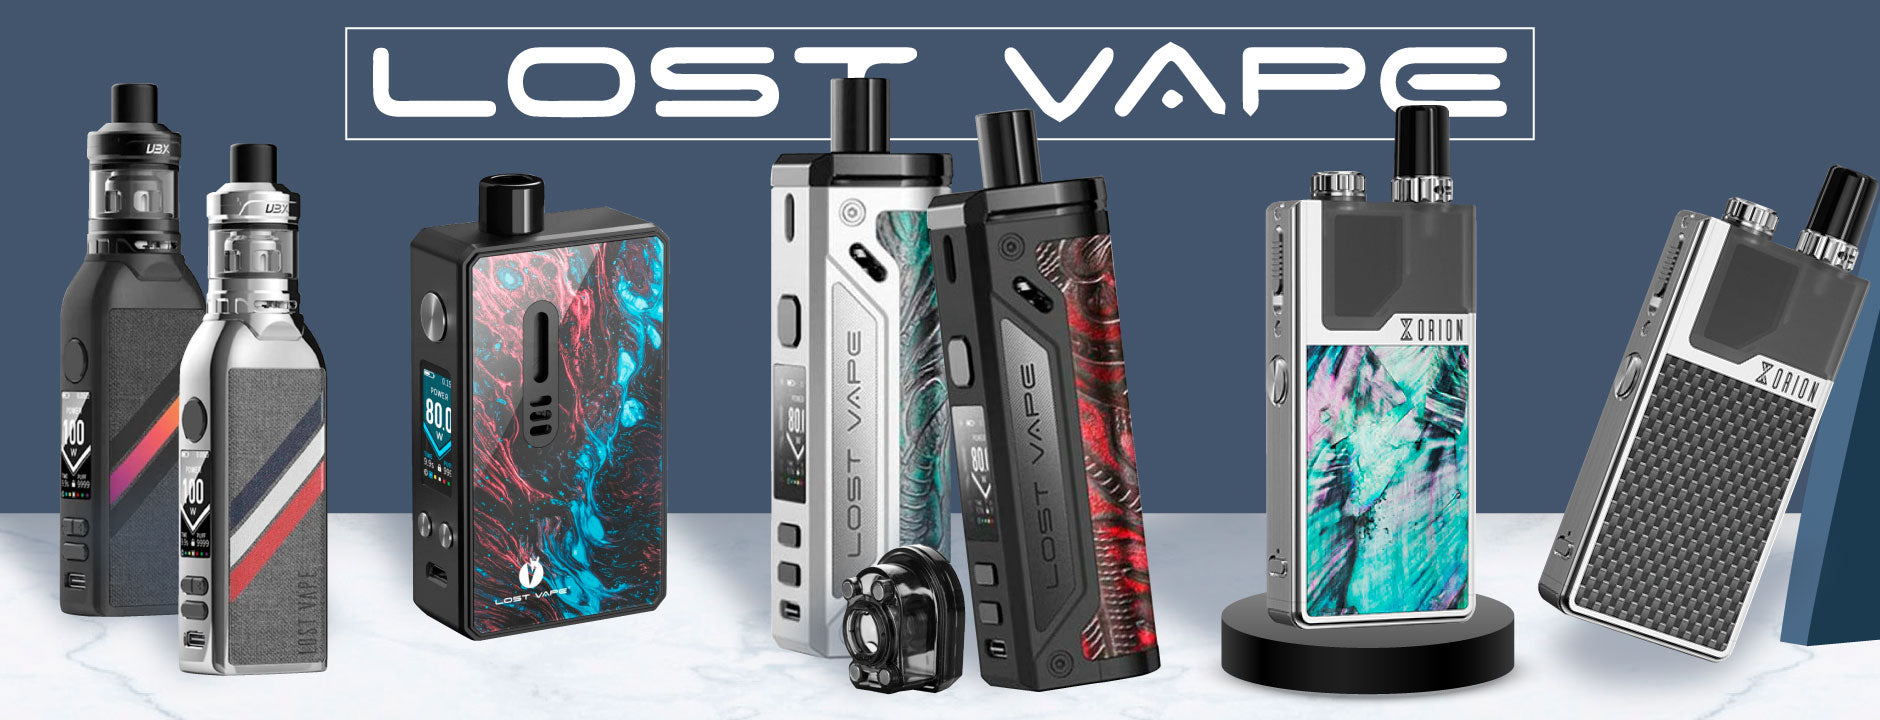 Banner Equipos Lost Vape